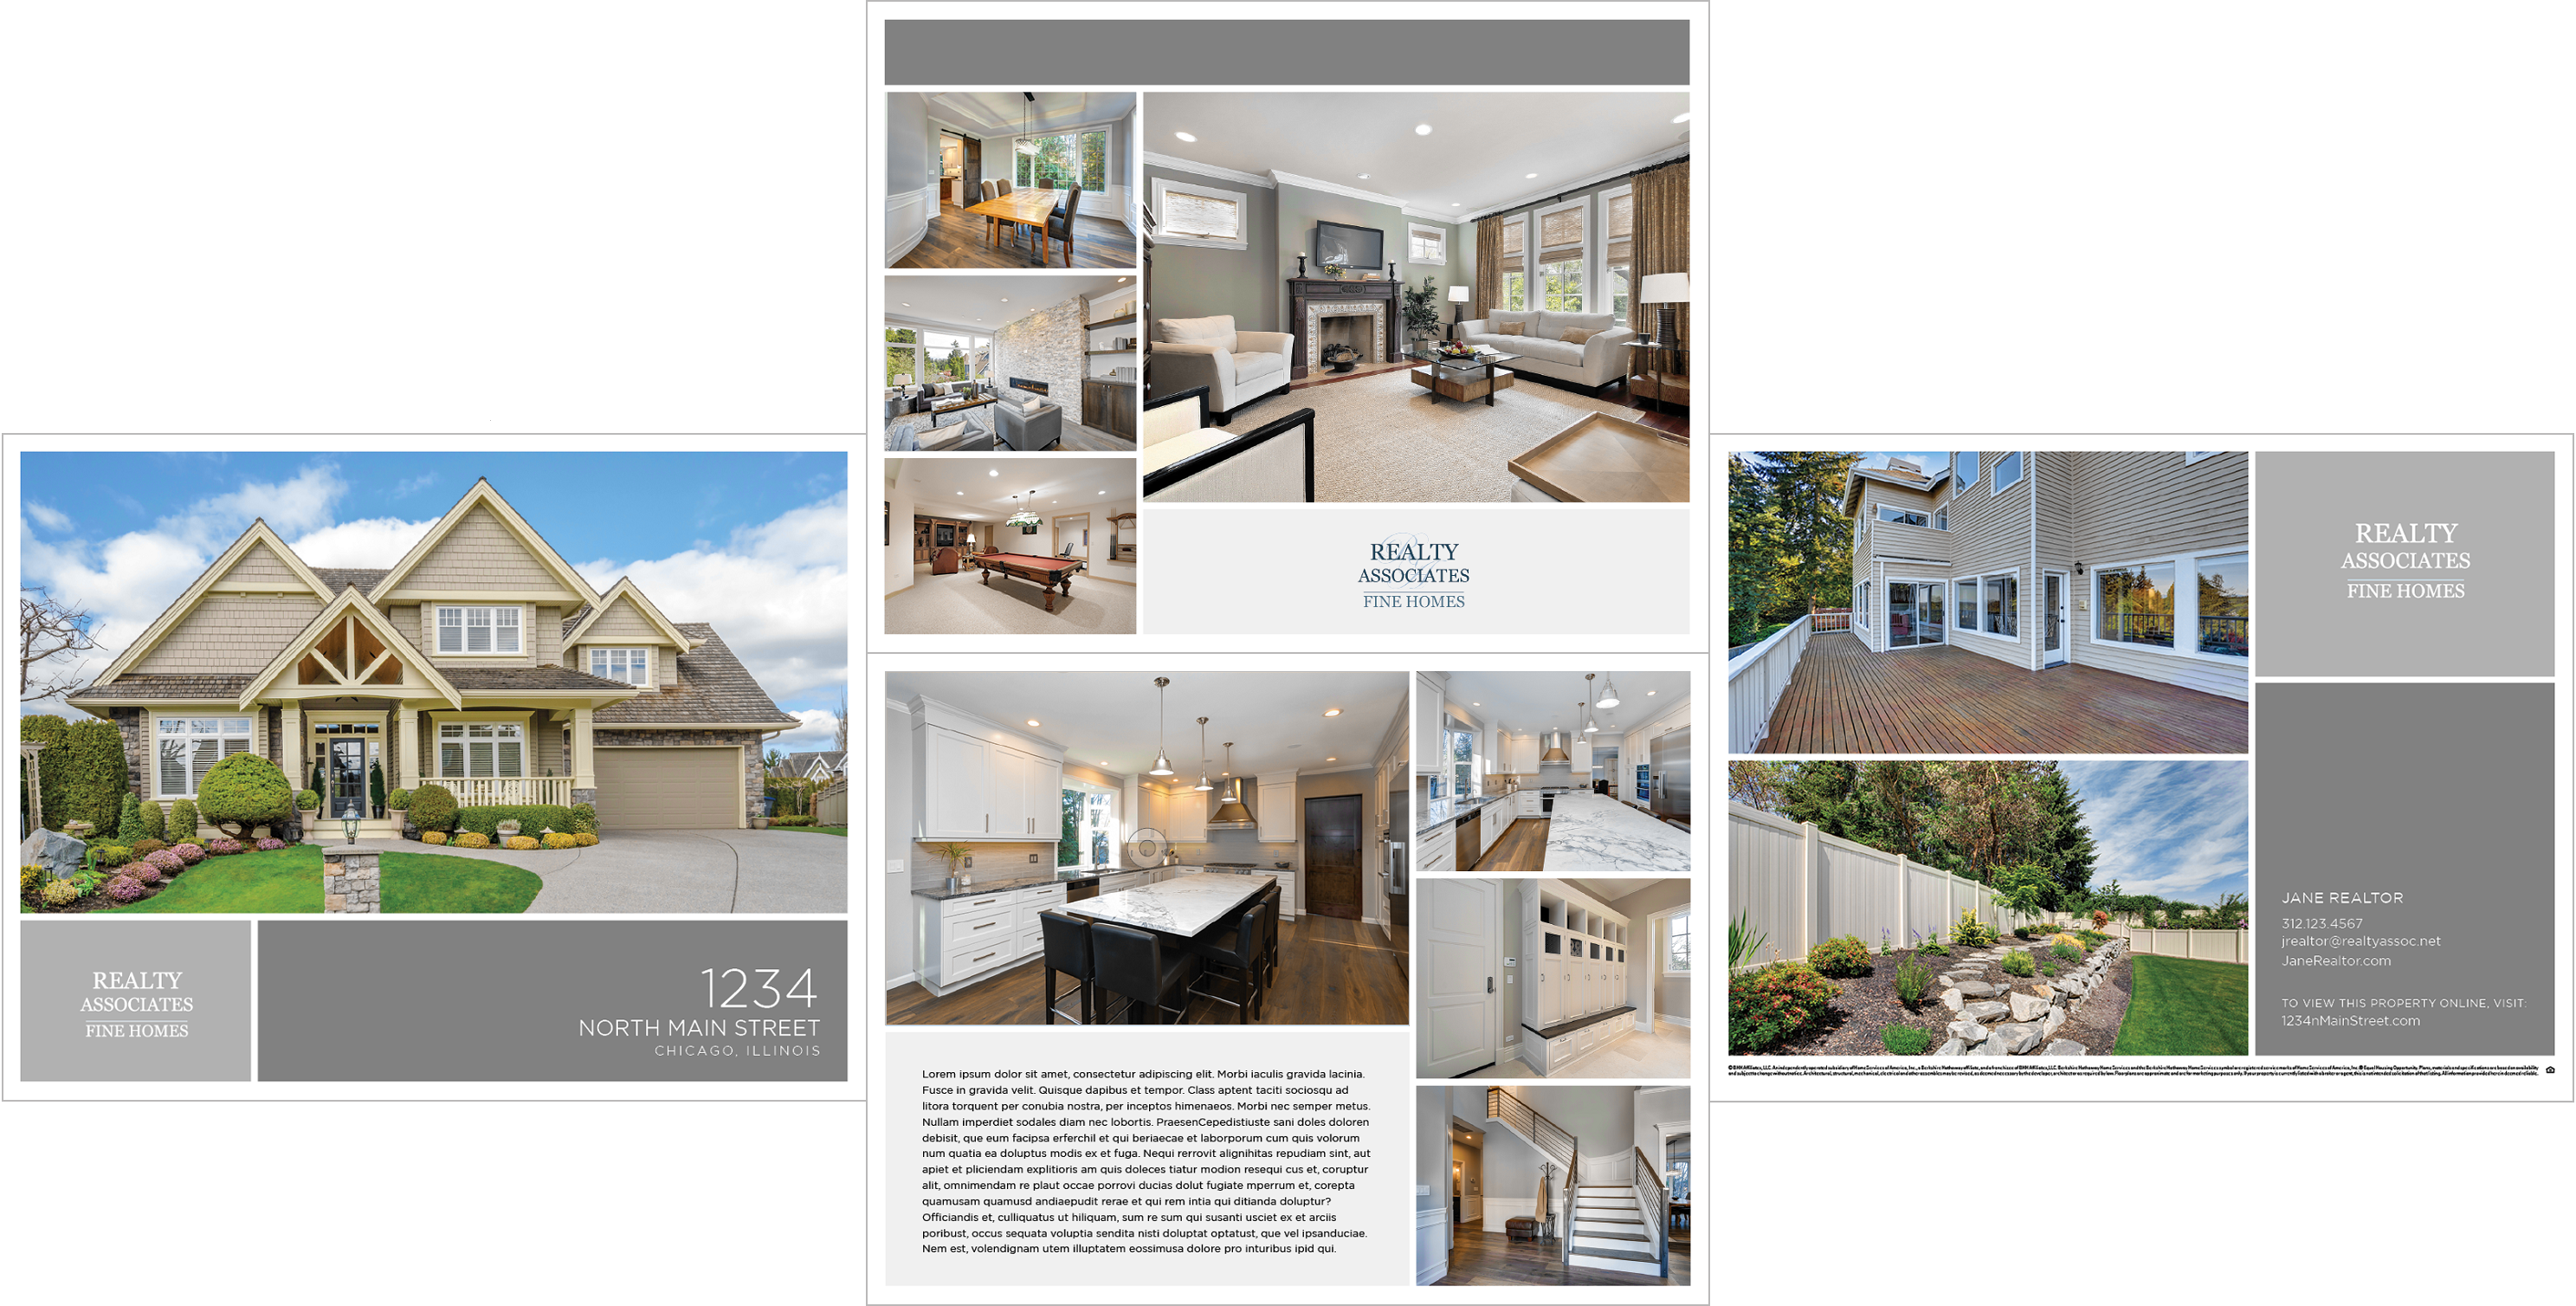 Property brochure | Automated listing flyer | Real estate